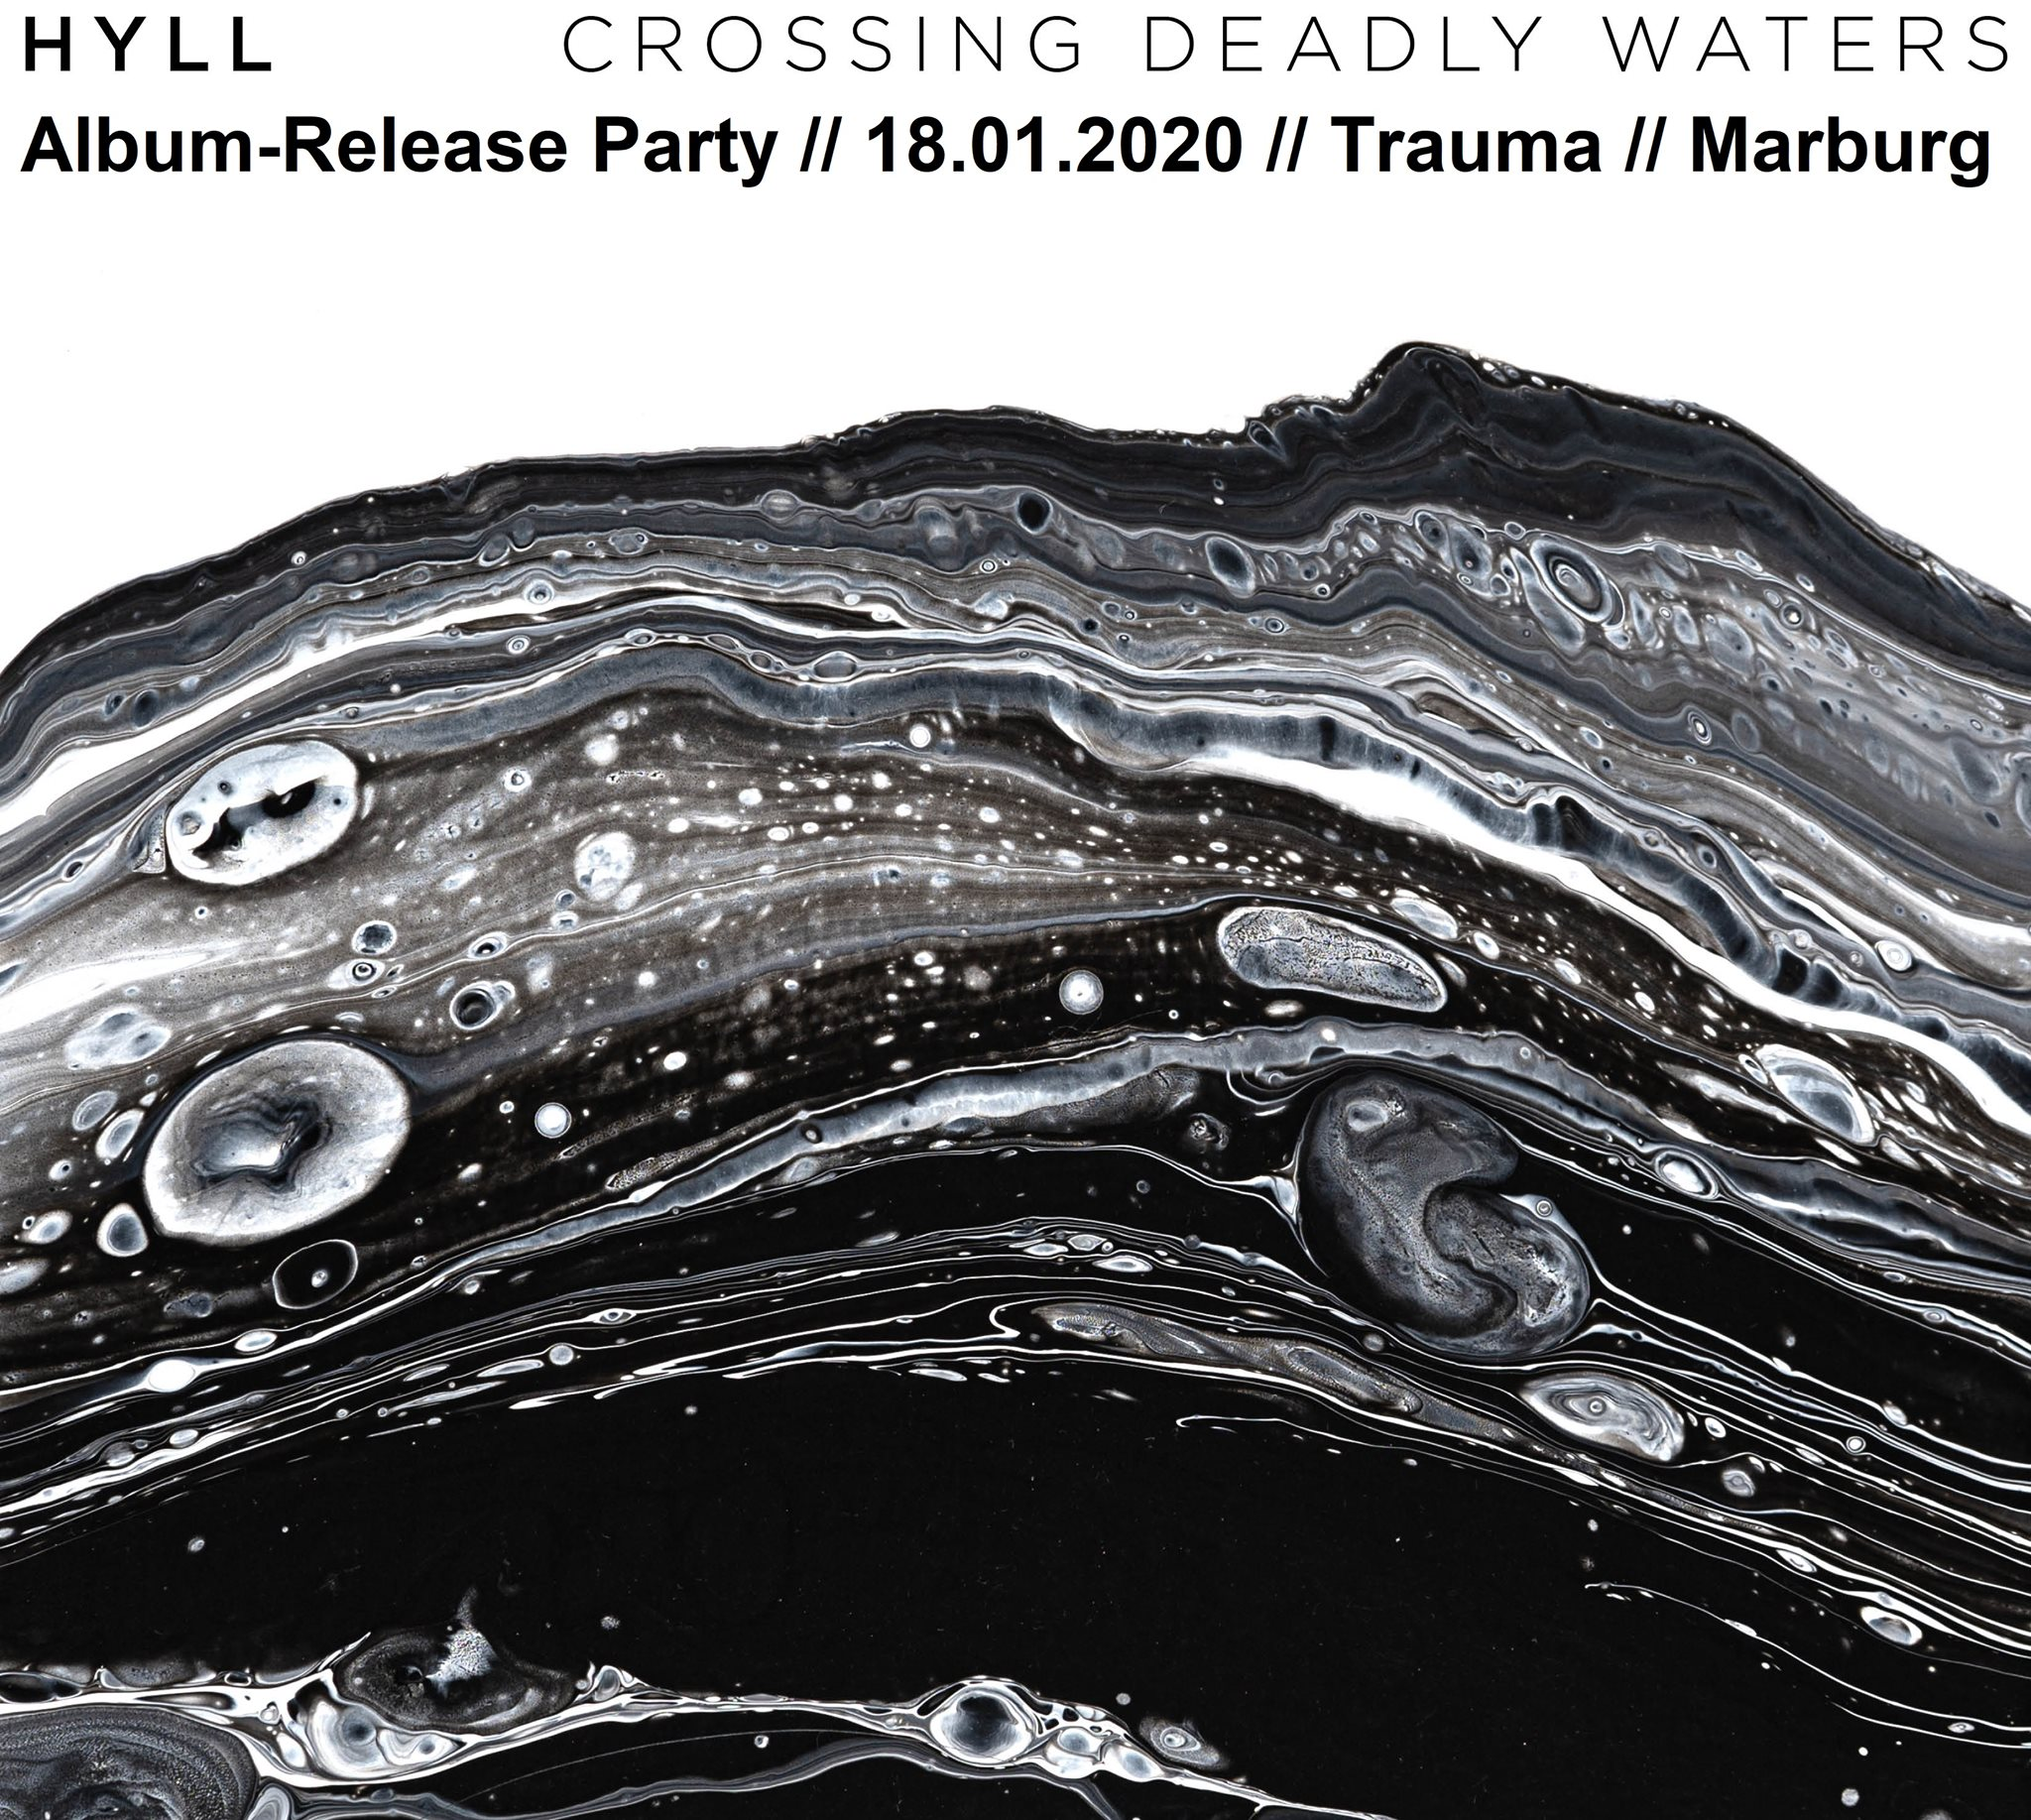 HYLL - Album Release Party